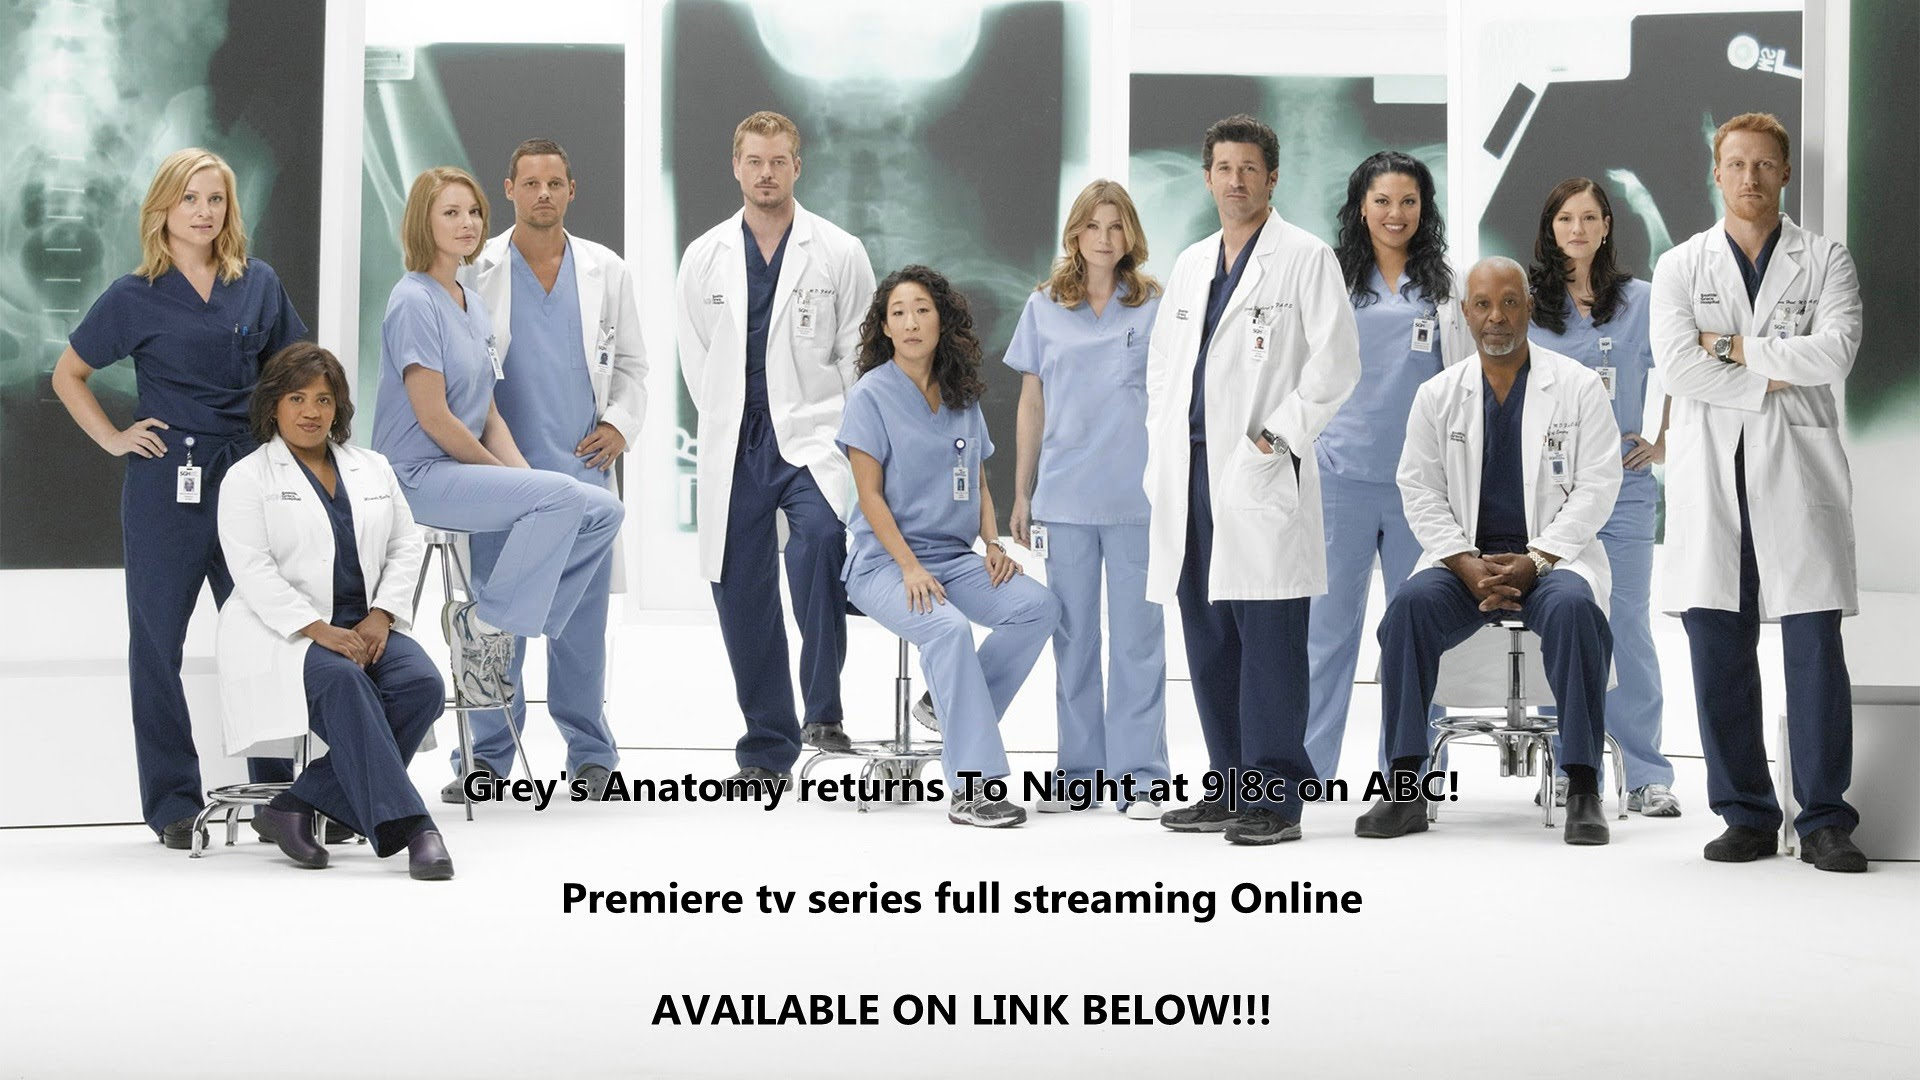 Putlocker Greys Anatomy 12x11 Season 12 Episode 11 Live Full